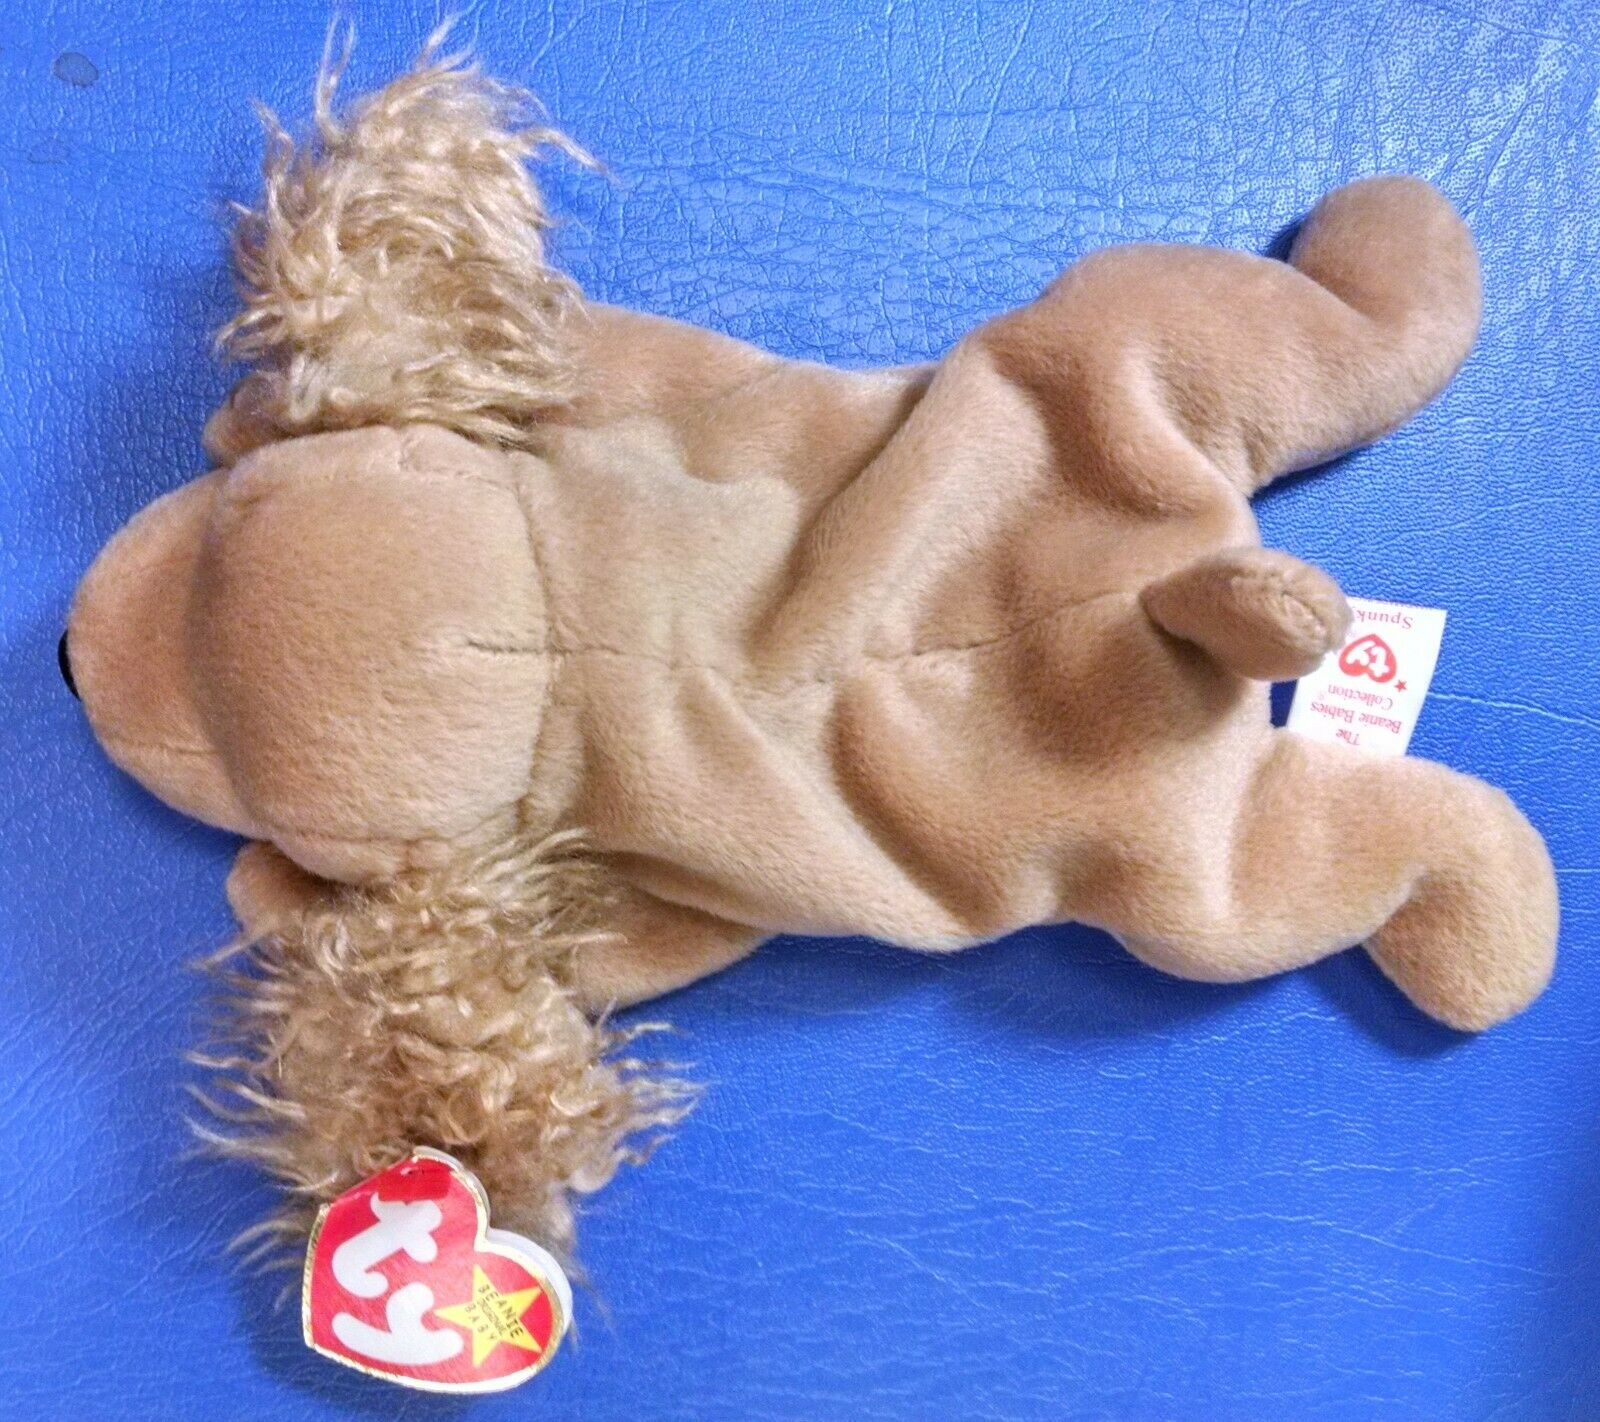 Ty Beanie Baby Original Spunky - January 14, 1997 - collectable